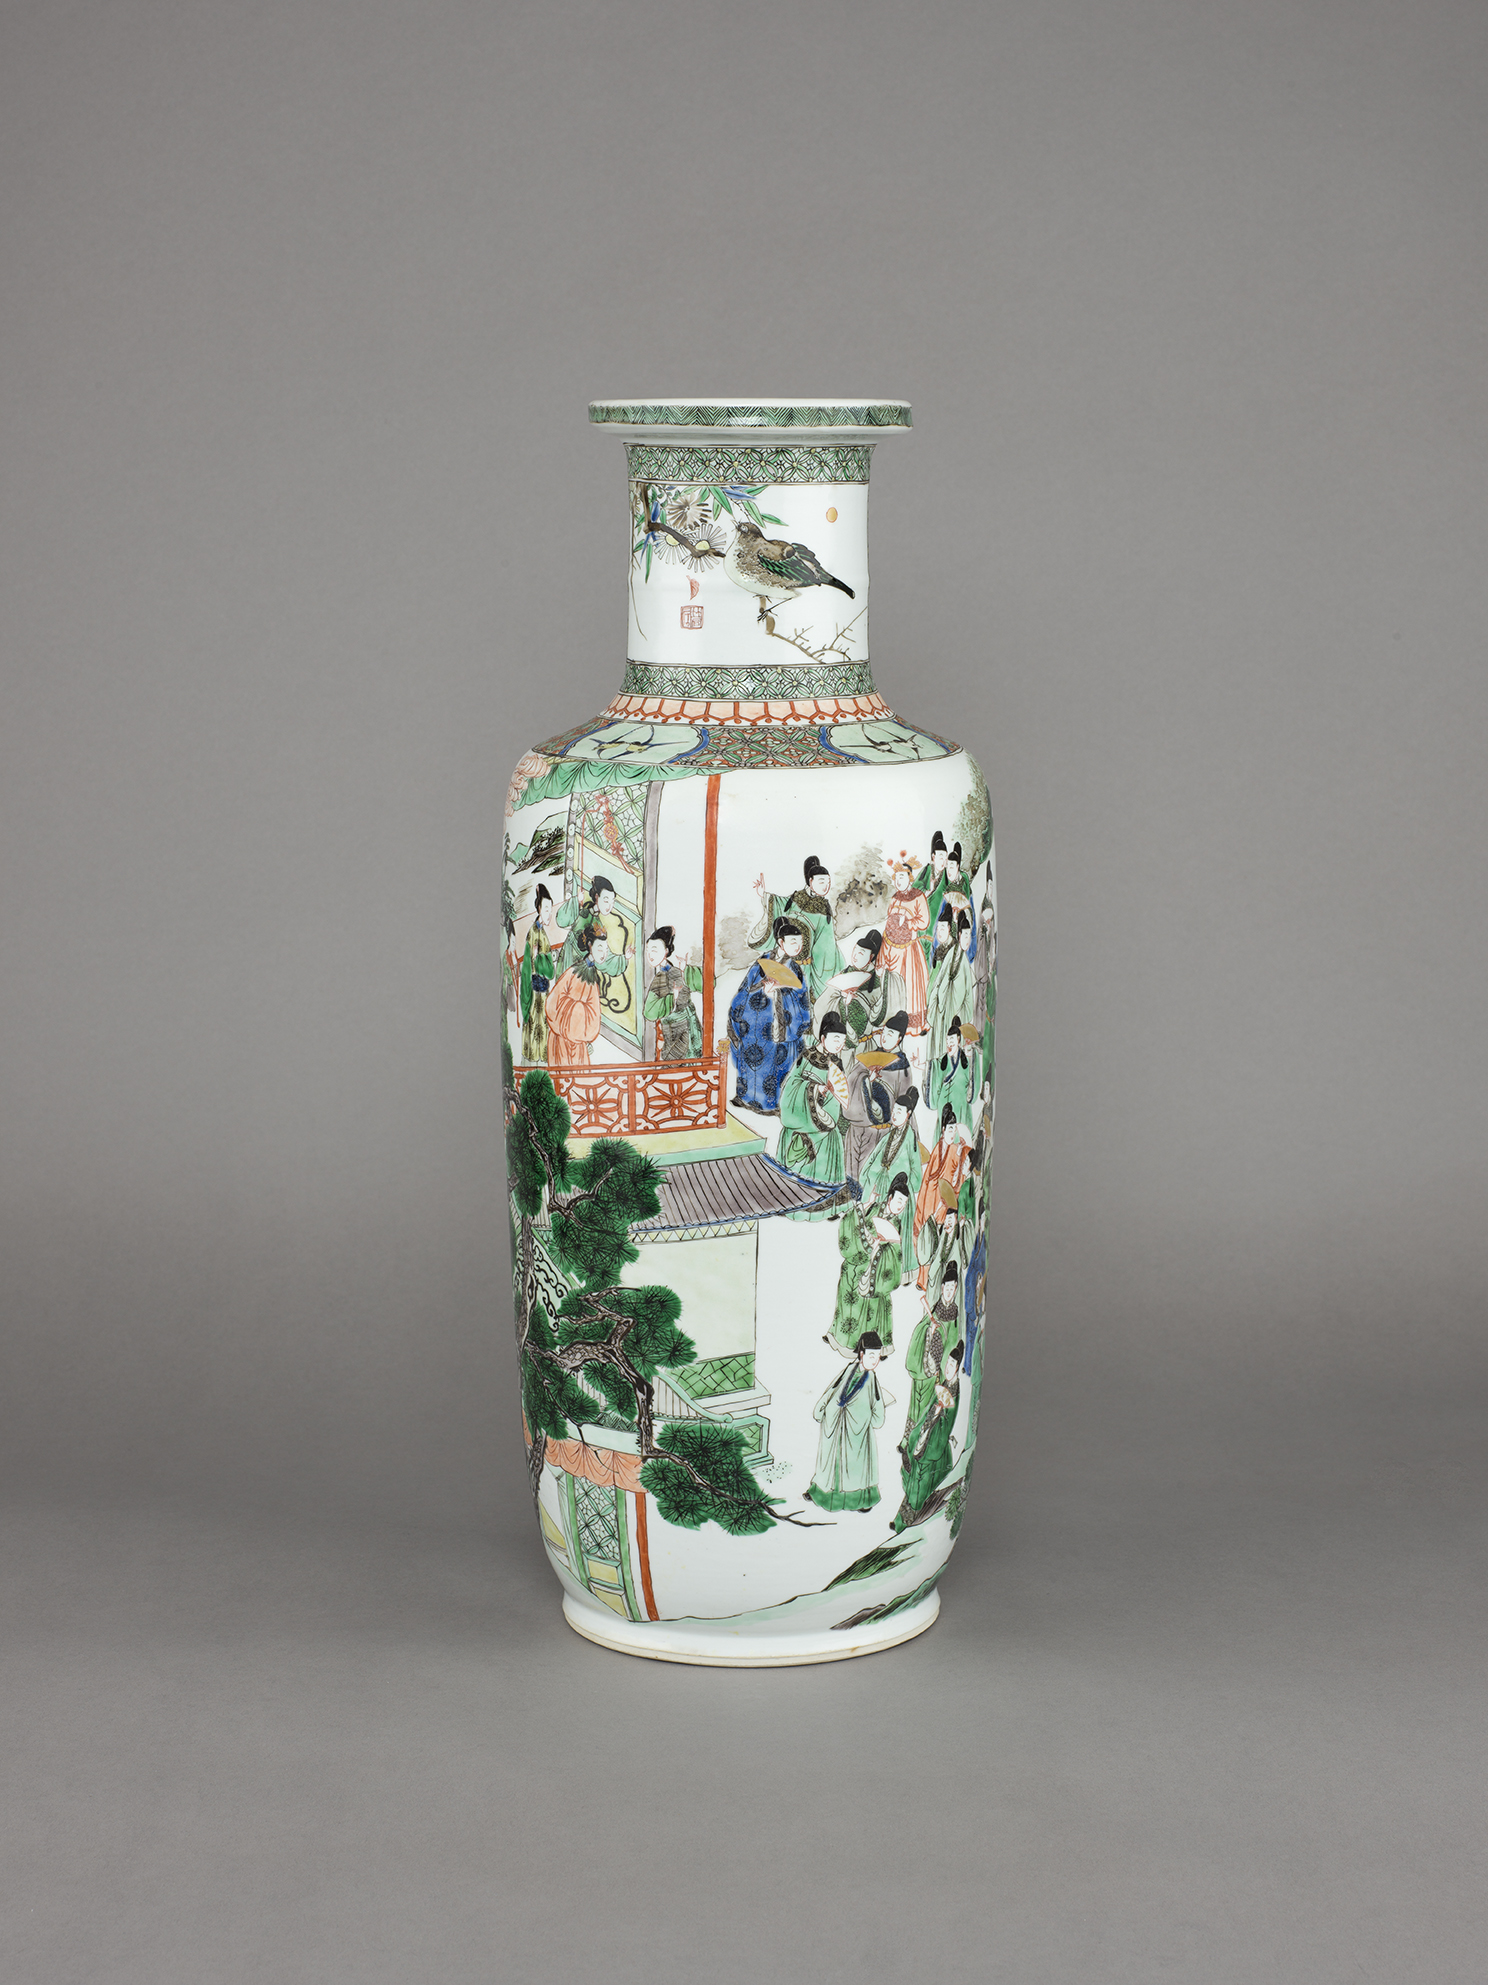 no. 6 - Chinese porcelain famille verte, wucai rouleau vase painted with a scene from Cailou Ji (The Bunted Loft). 18 ½ inches, 47 cm high. Kangxi, 1662-1722.